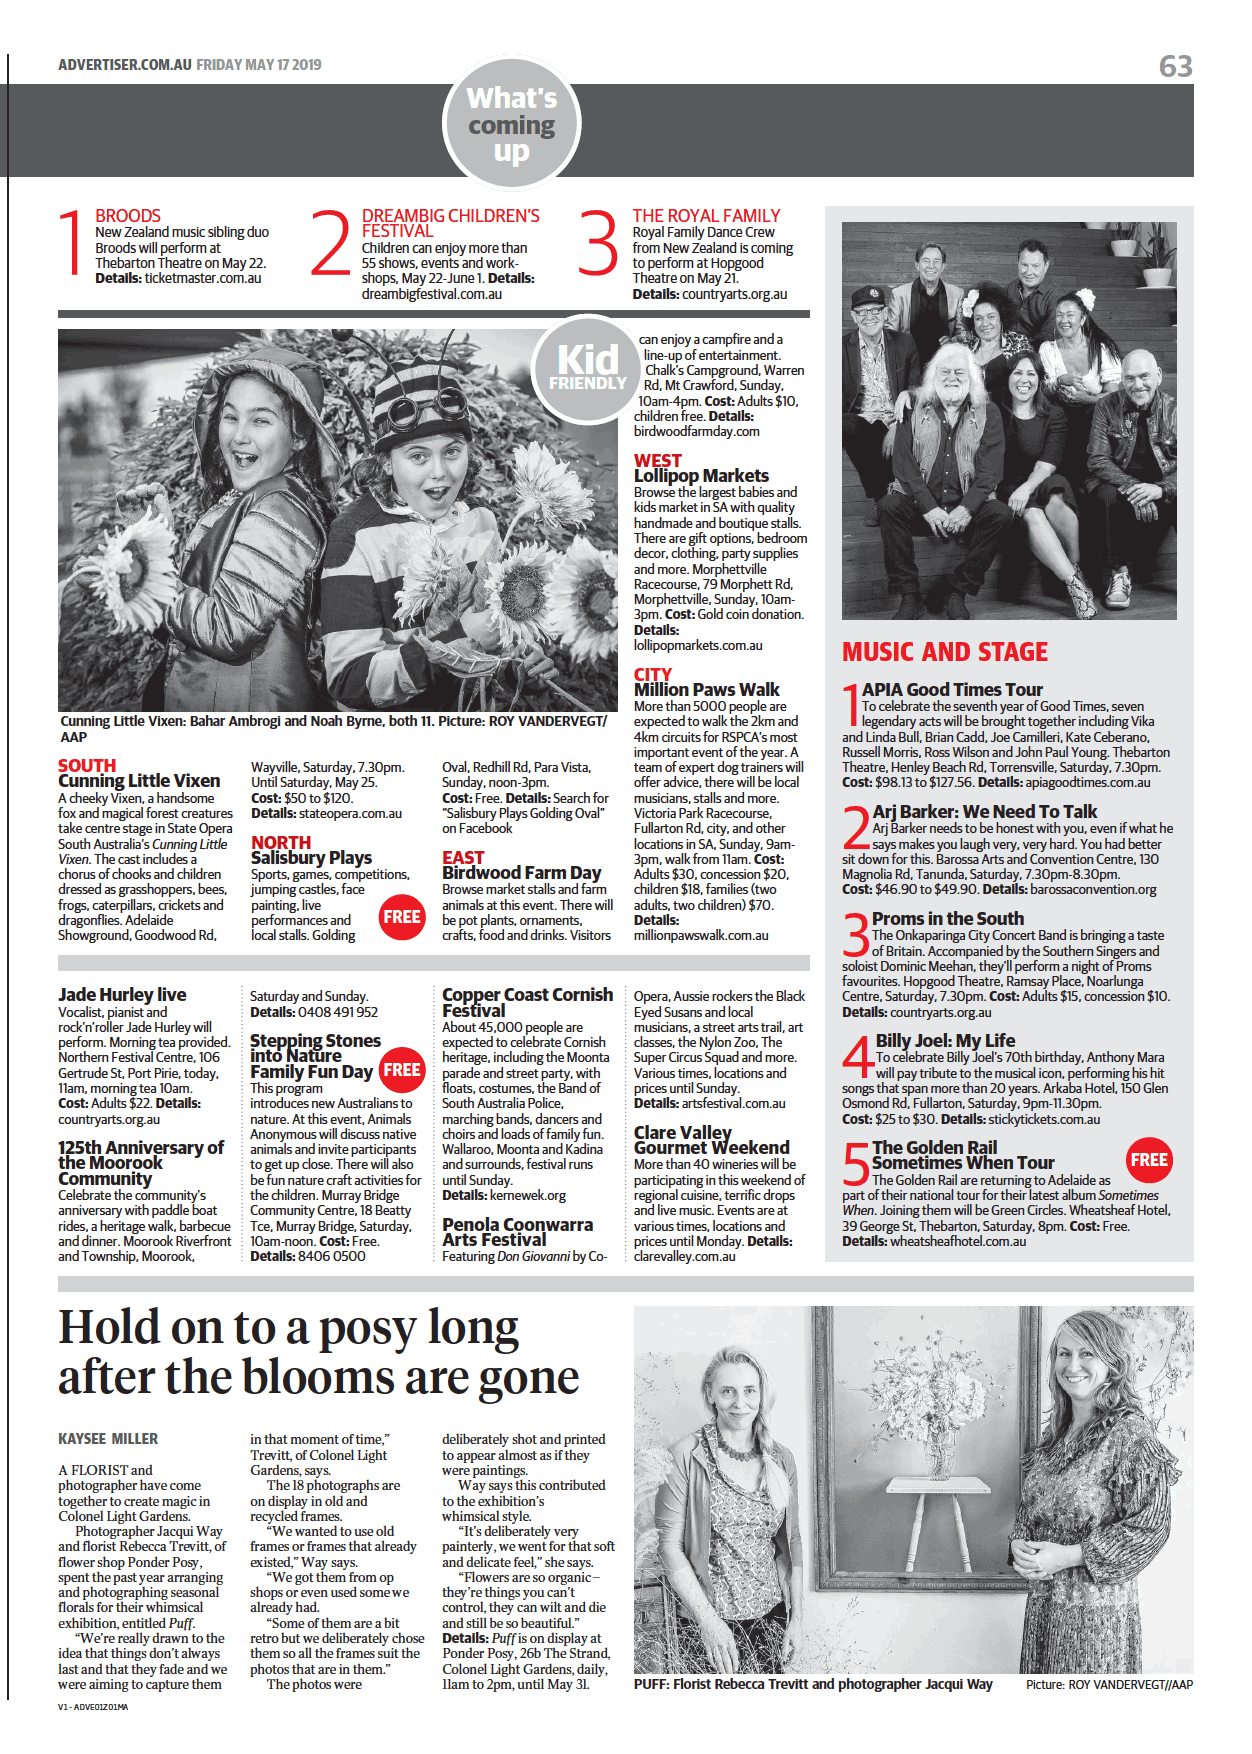 The Advertiser - Your Weekend Guide 1.png